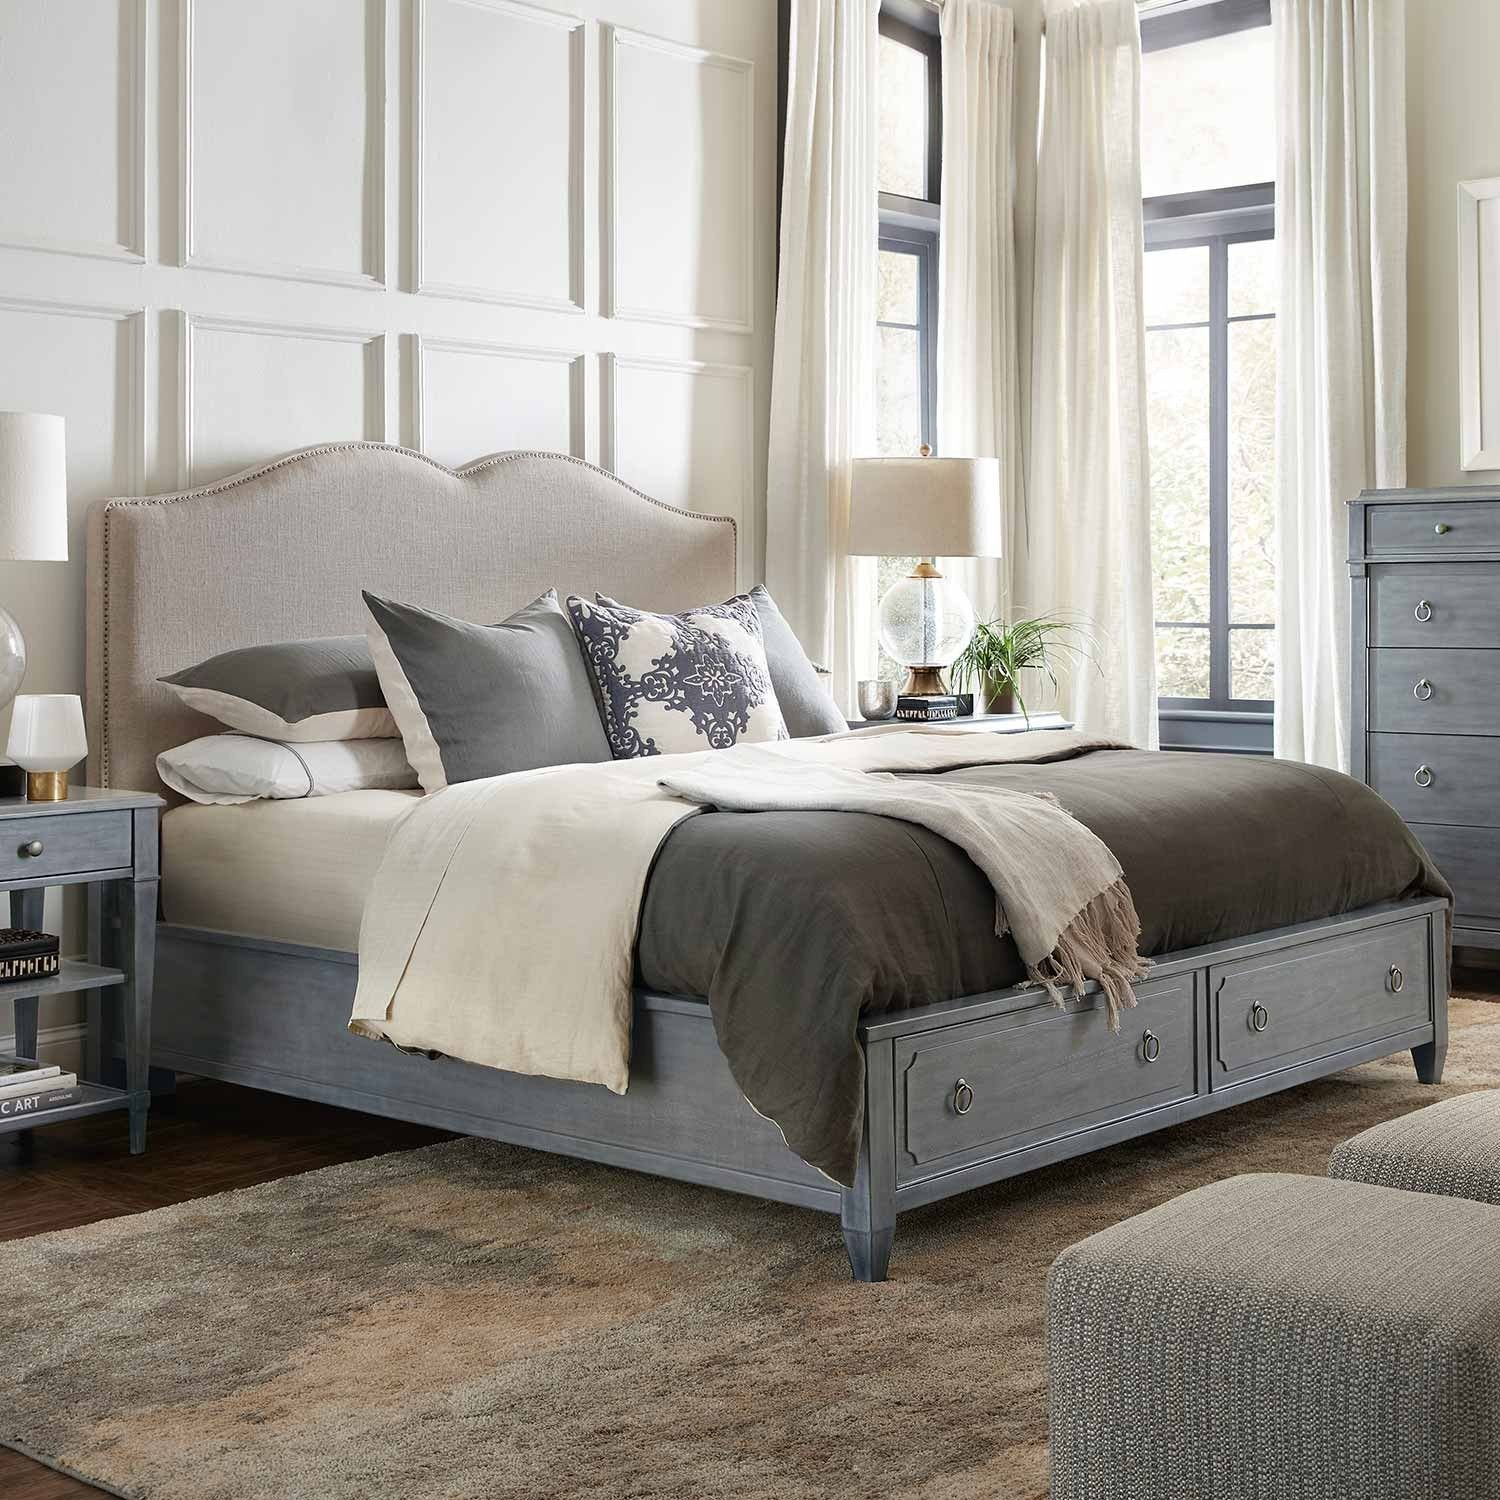 Blue Bedroom Furniture Set Fresh the Hamilton Wood & Upholstered Panel Storage Bed In Gray